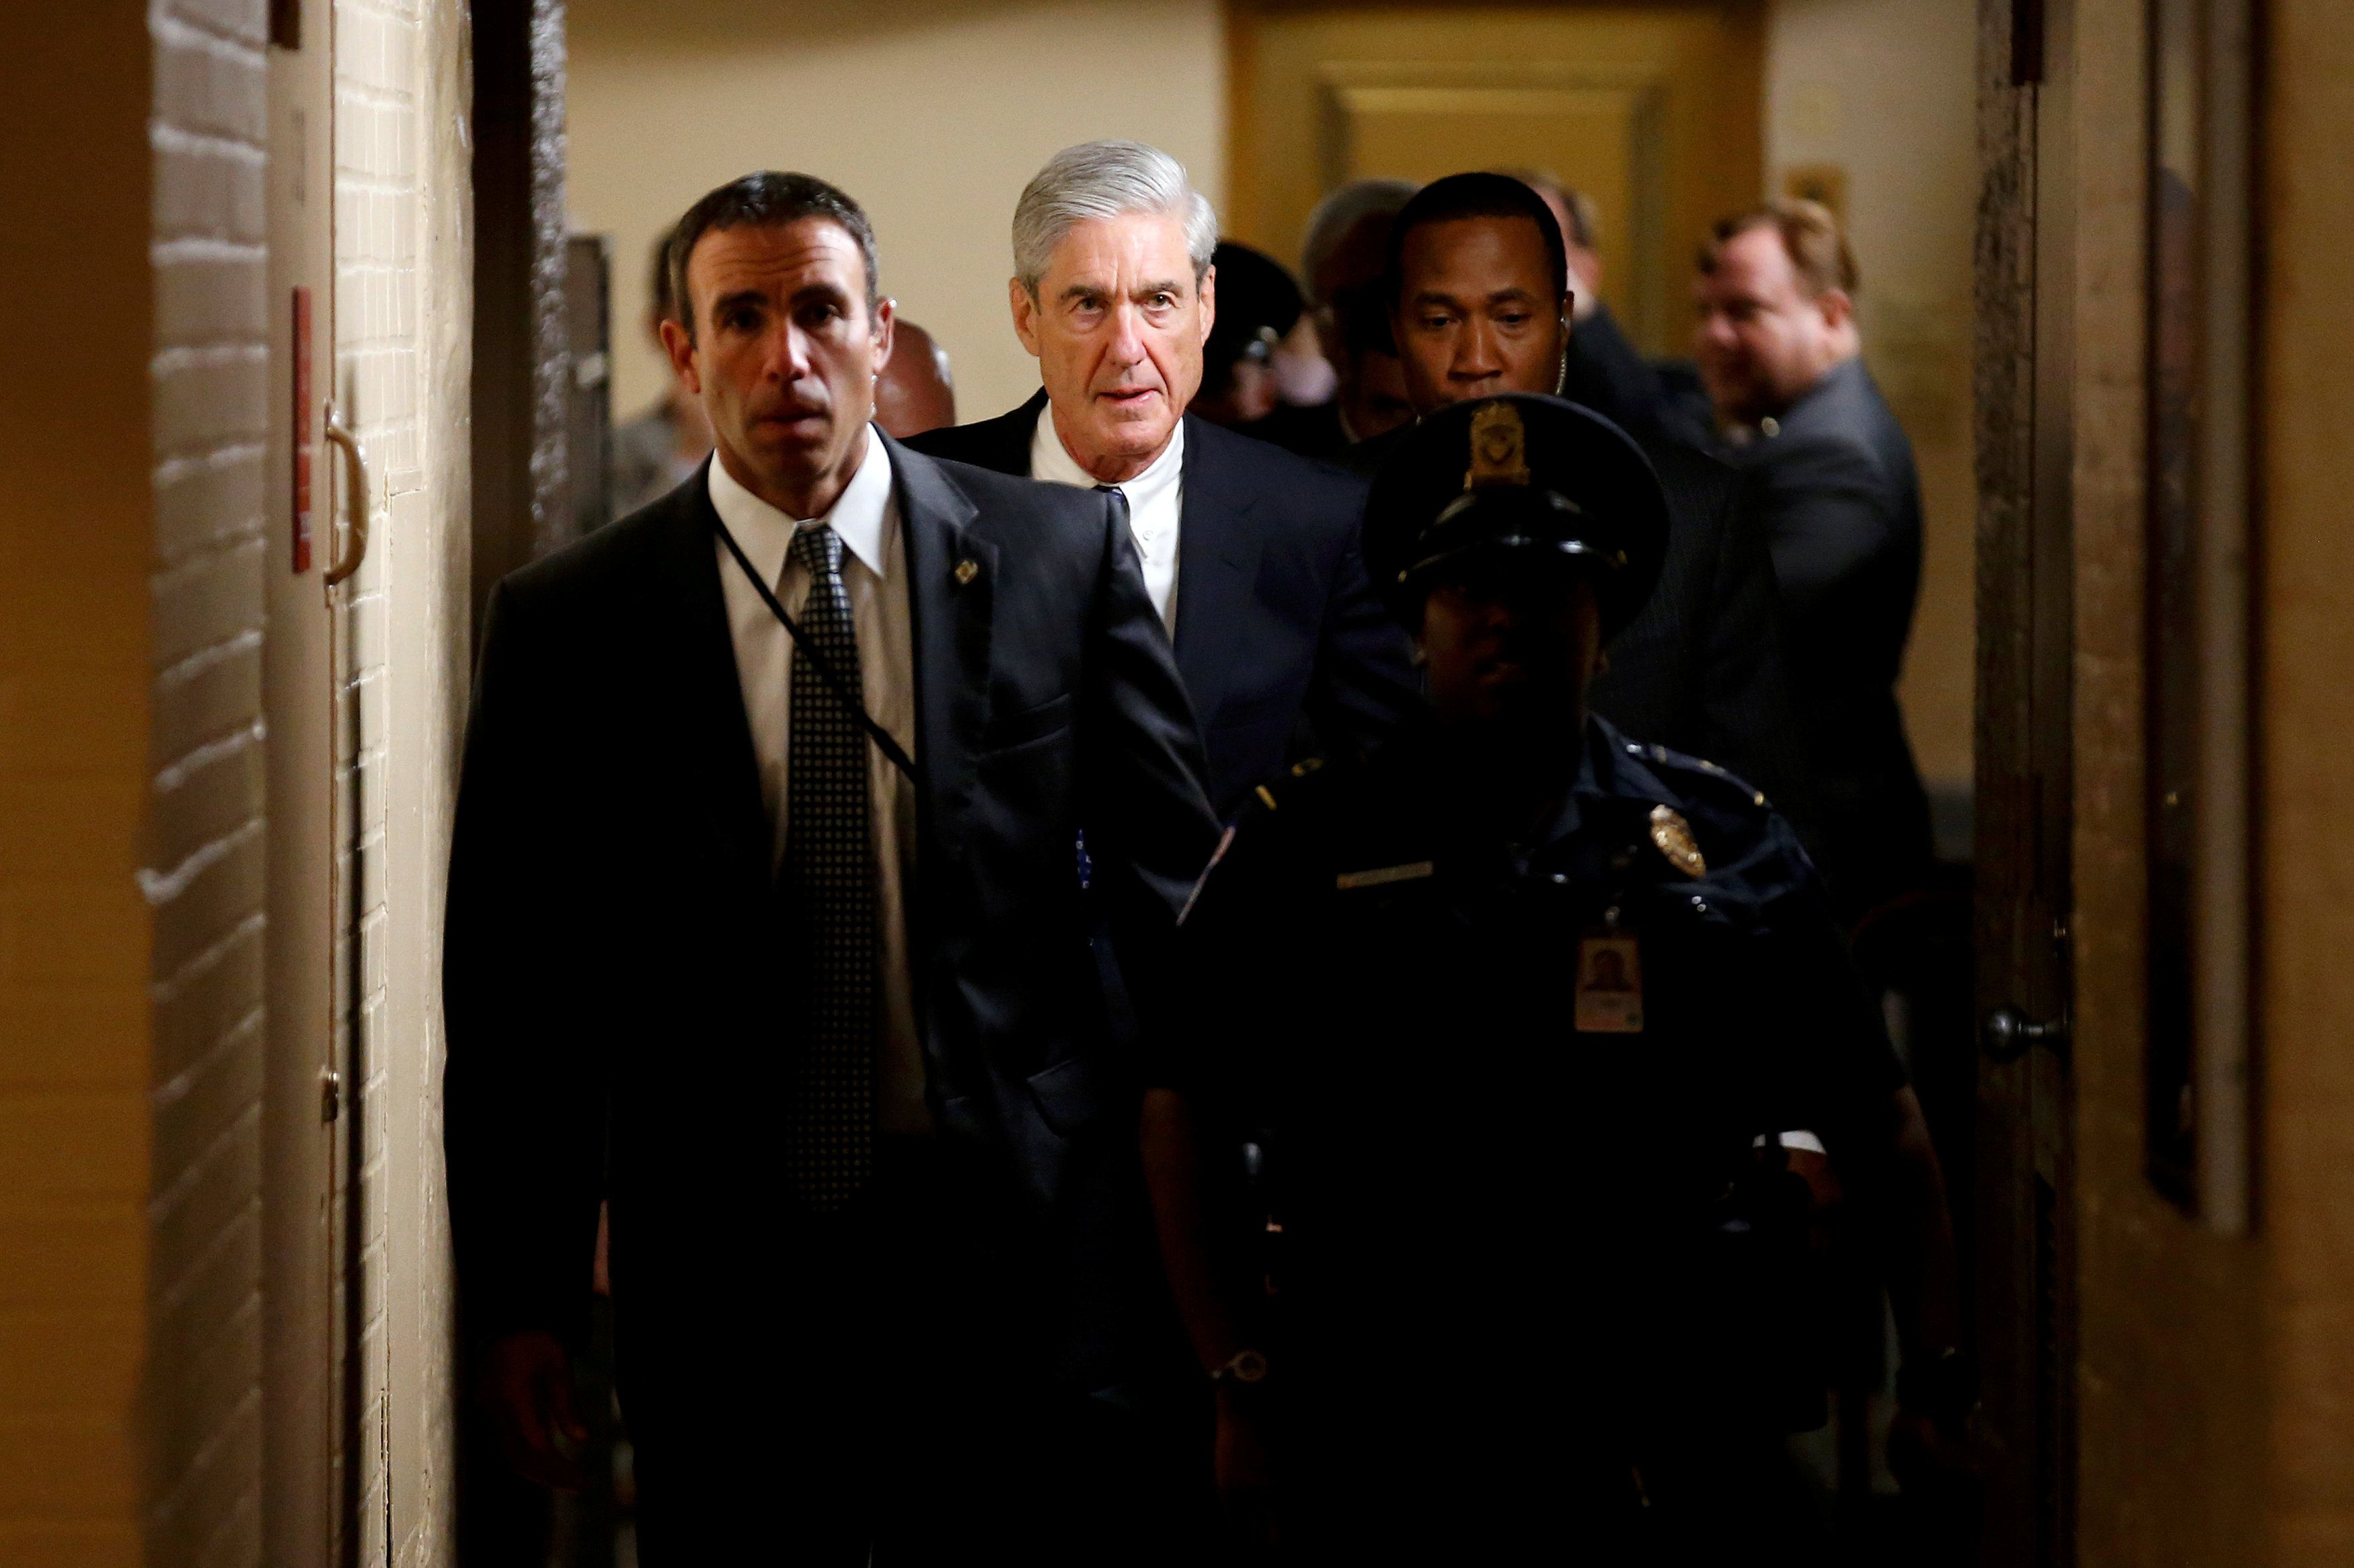 Special counsel Robert Mueller is surrounded by police and security after briefing members of the Senate on his Russia